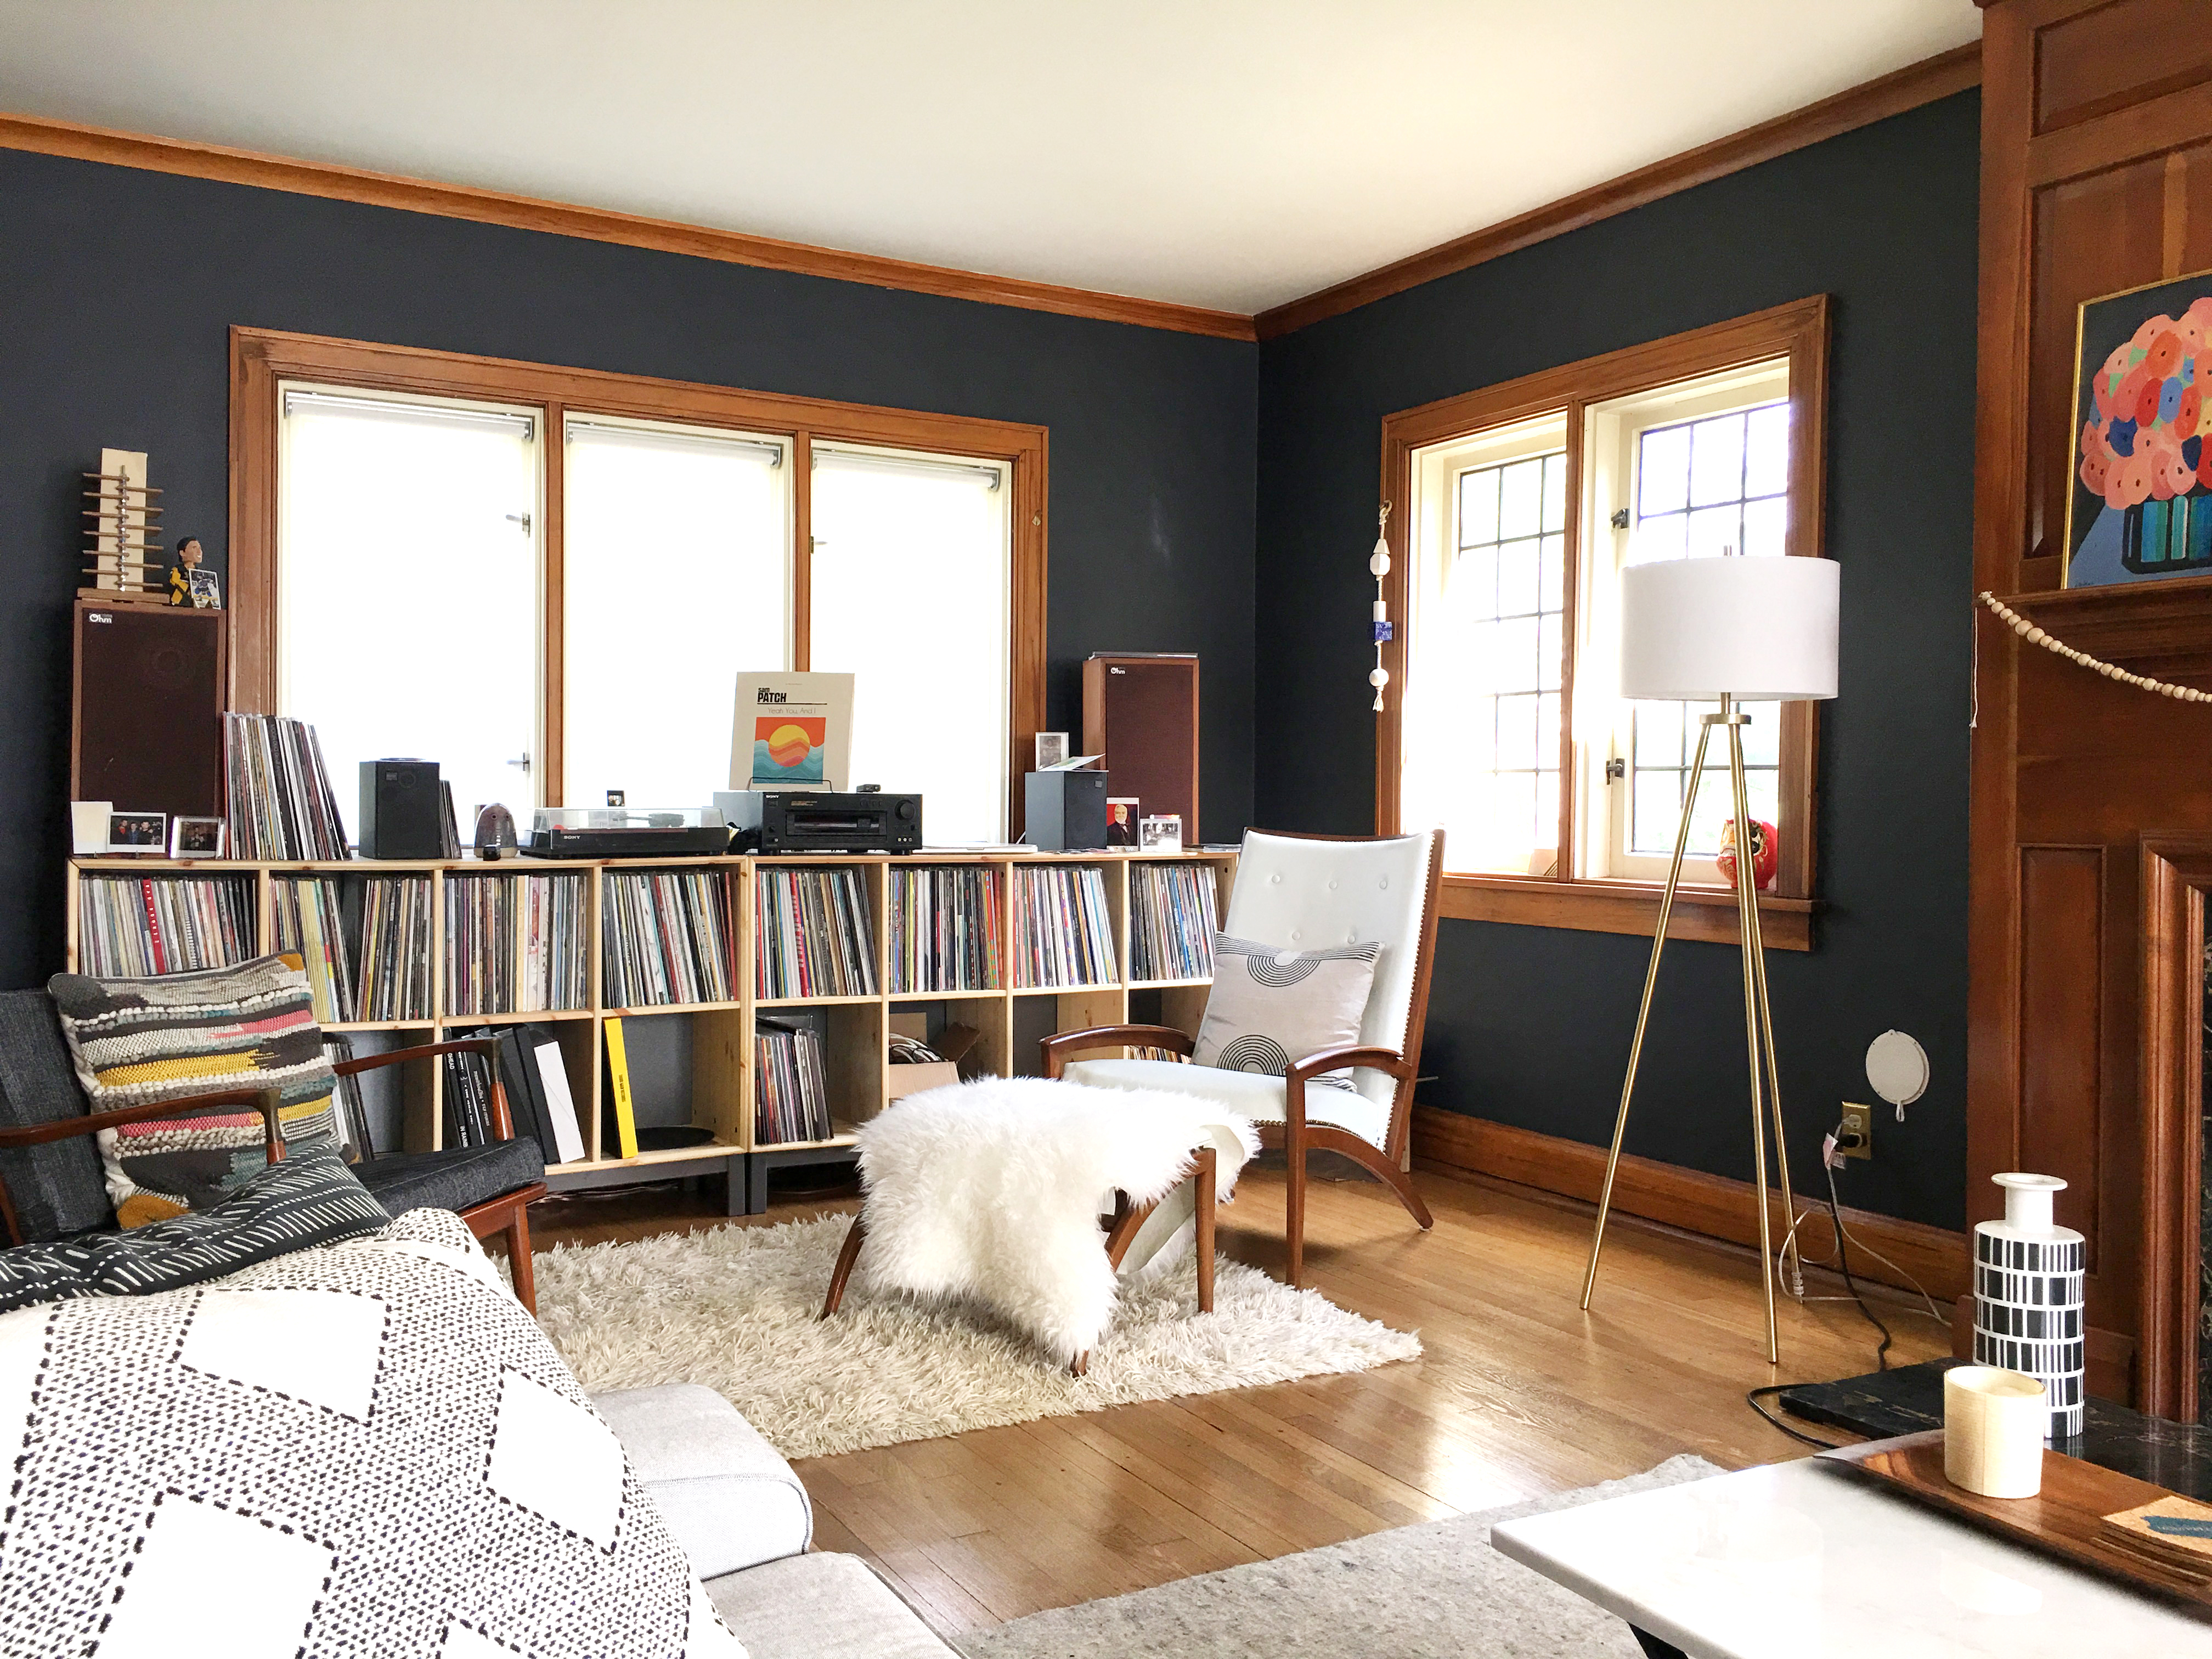 Pairing A Neutral Rug With Moody Walls The Sweet Beast Rewiring An Old House Plaster At Other End Of Living Room Is Andys Record Collection And Listening Nook In Our Apartment His Was Kept Dining